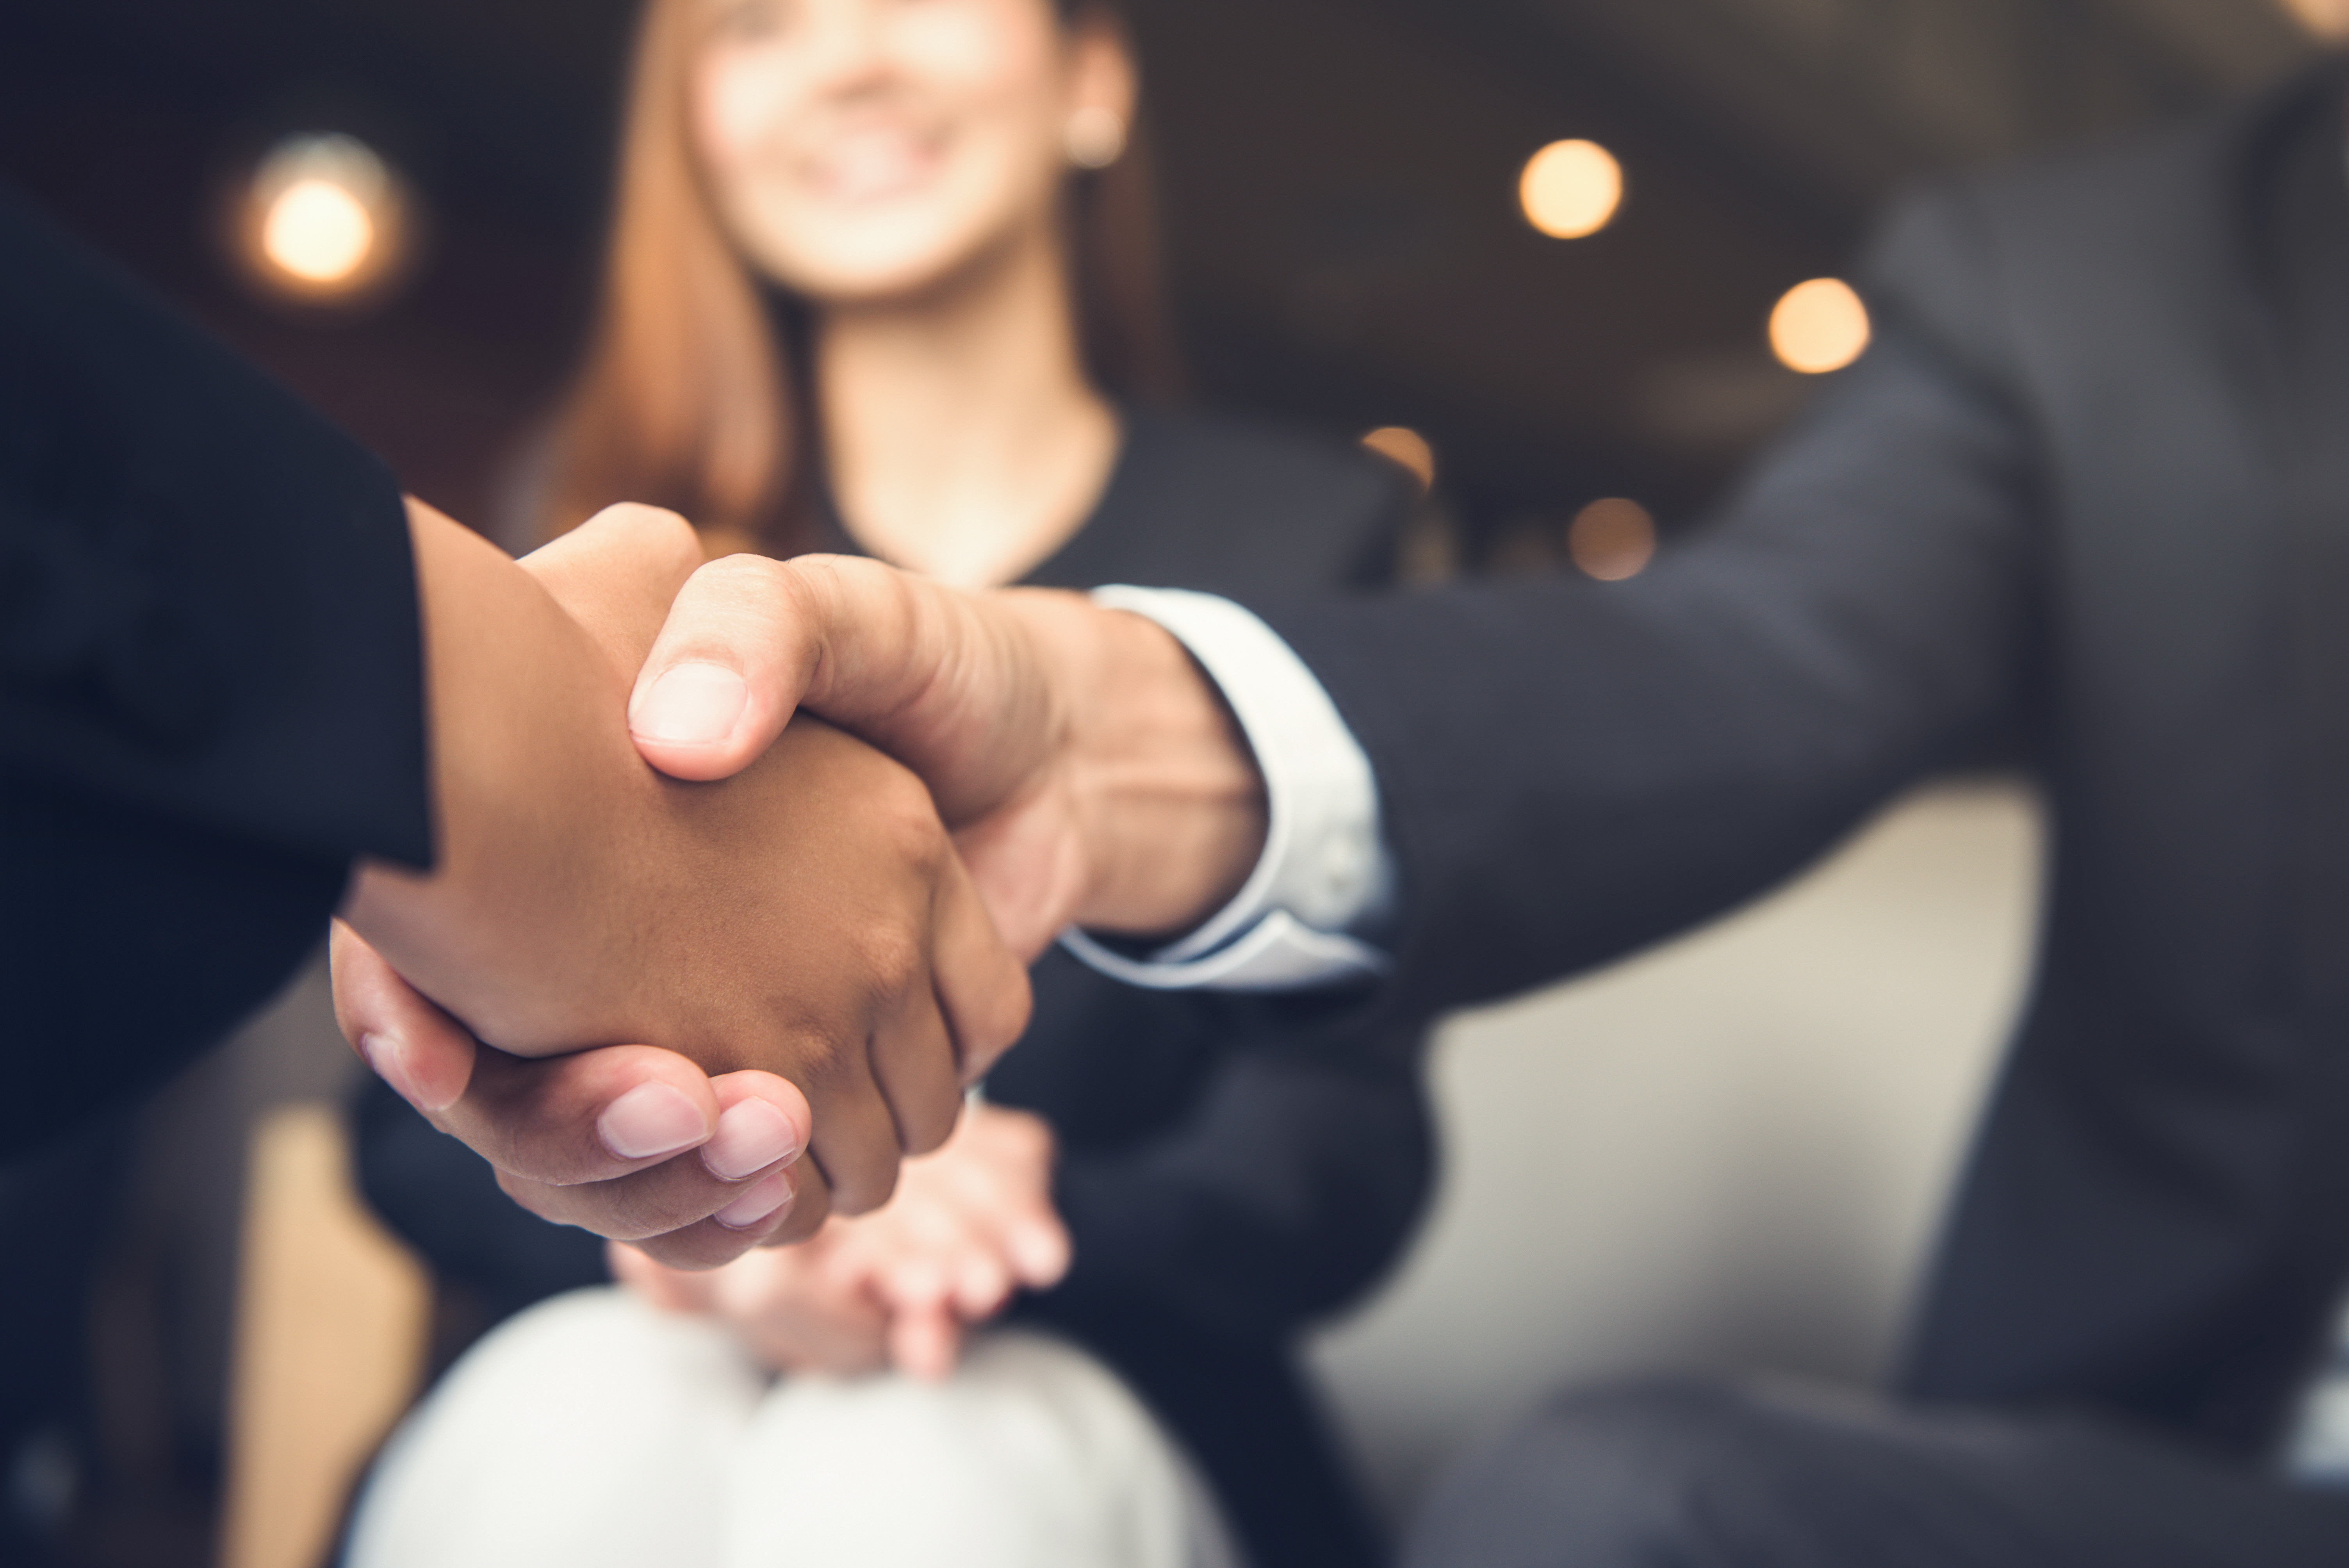 Two people shaking hands in trust